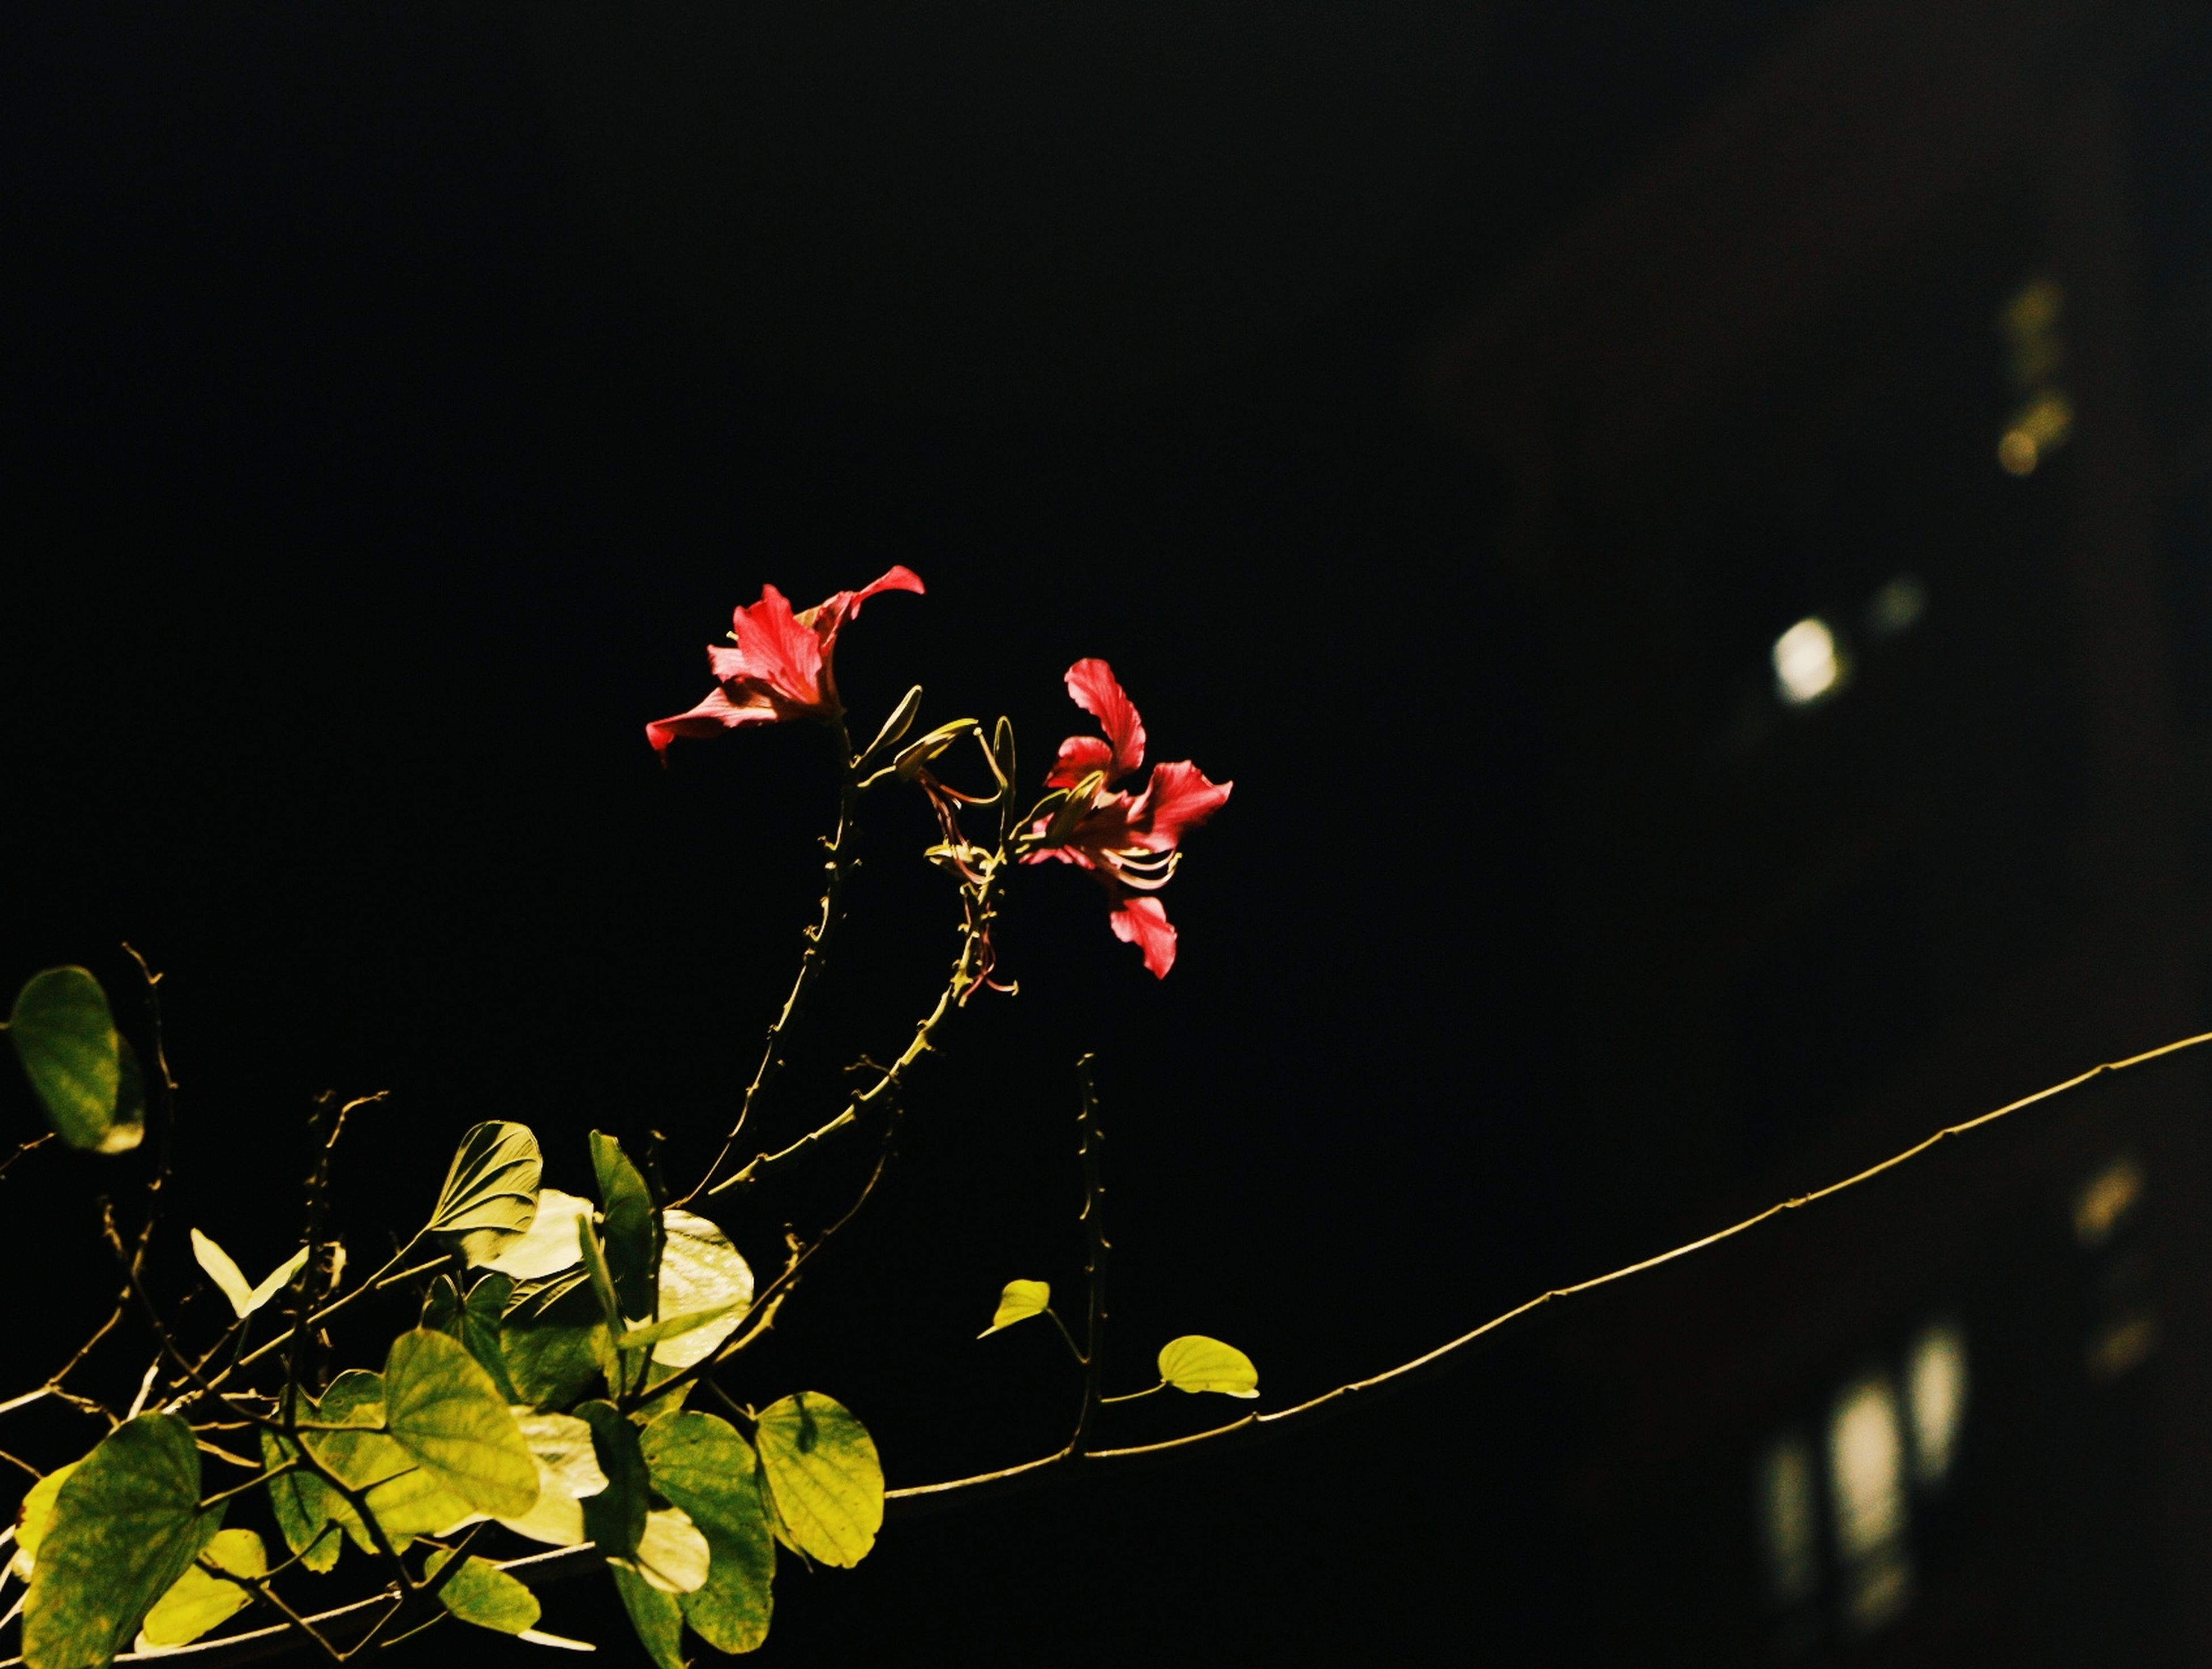 nature, growth, fragility, flower, beauty in nature, no people, freshness, outdoors, night, animal themes, close-up, flower head